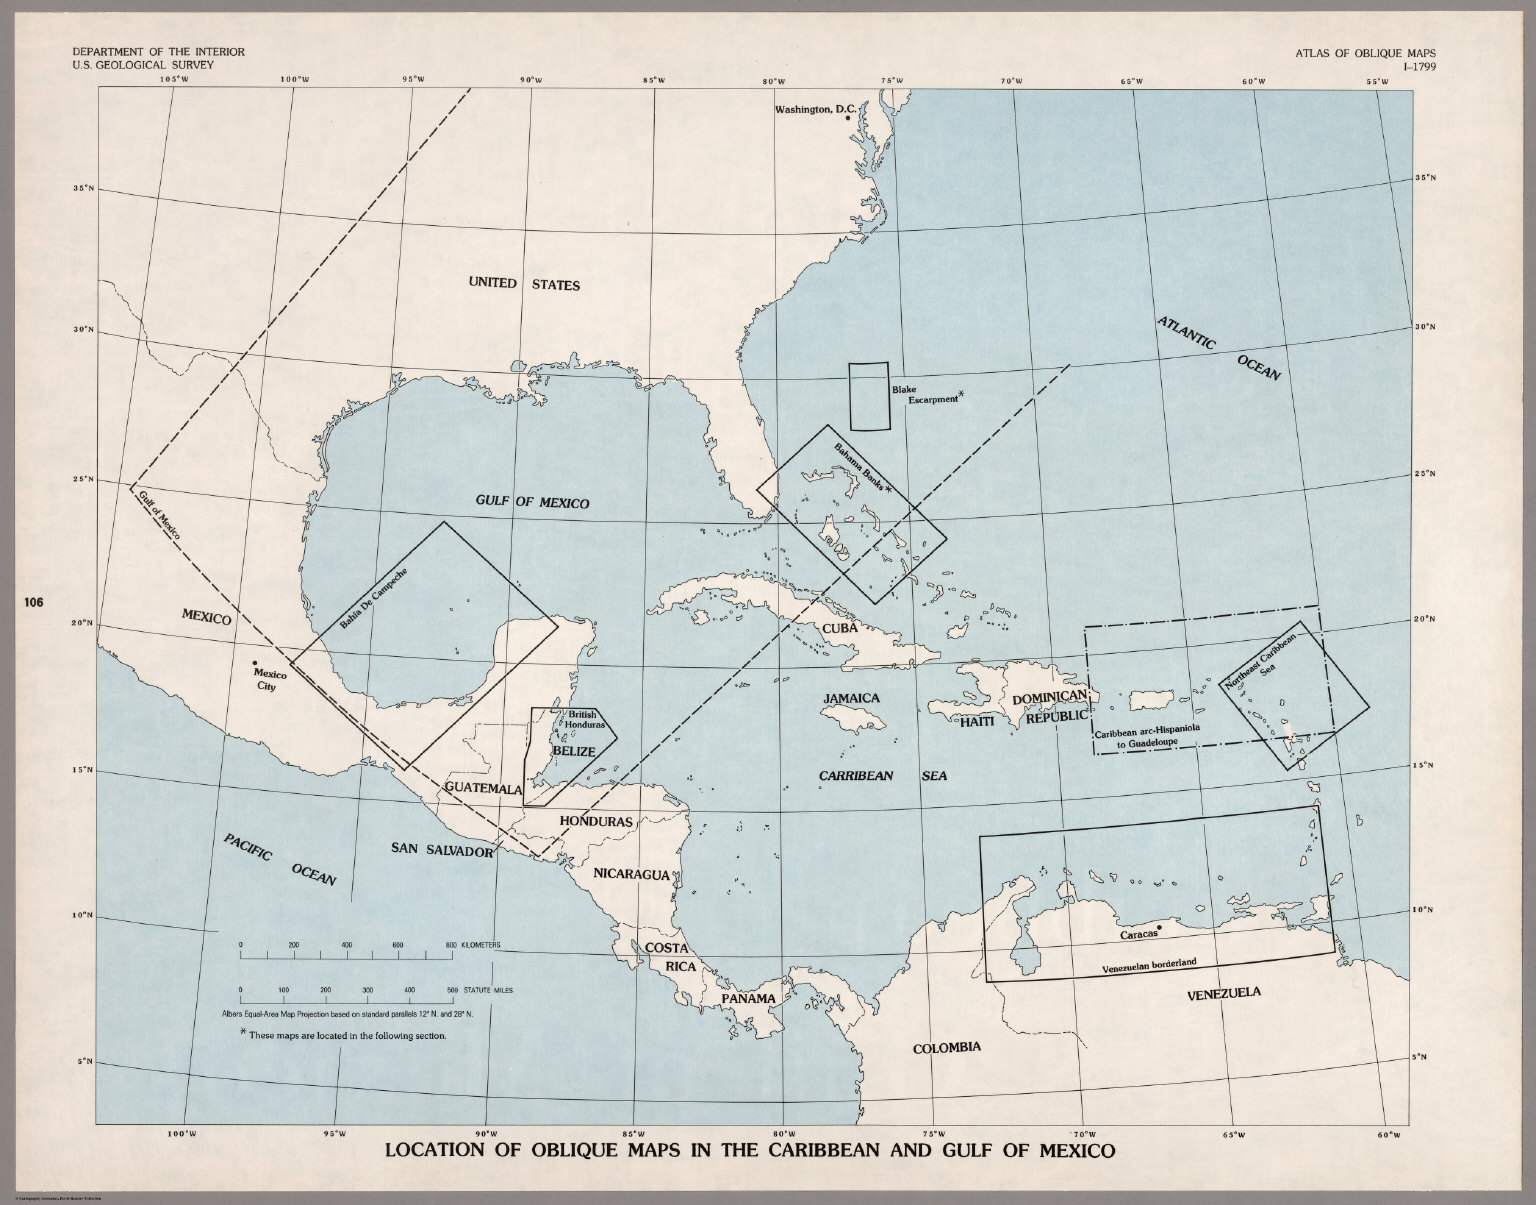 Index Map Location of Oblique Maps in the Caribbean and the Gulf